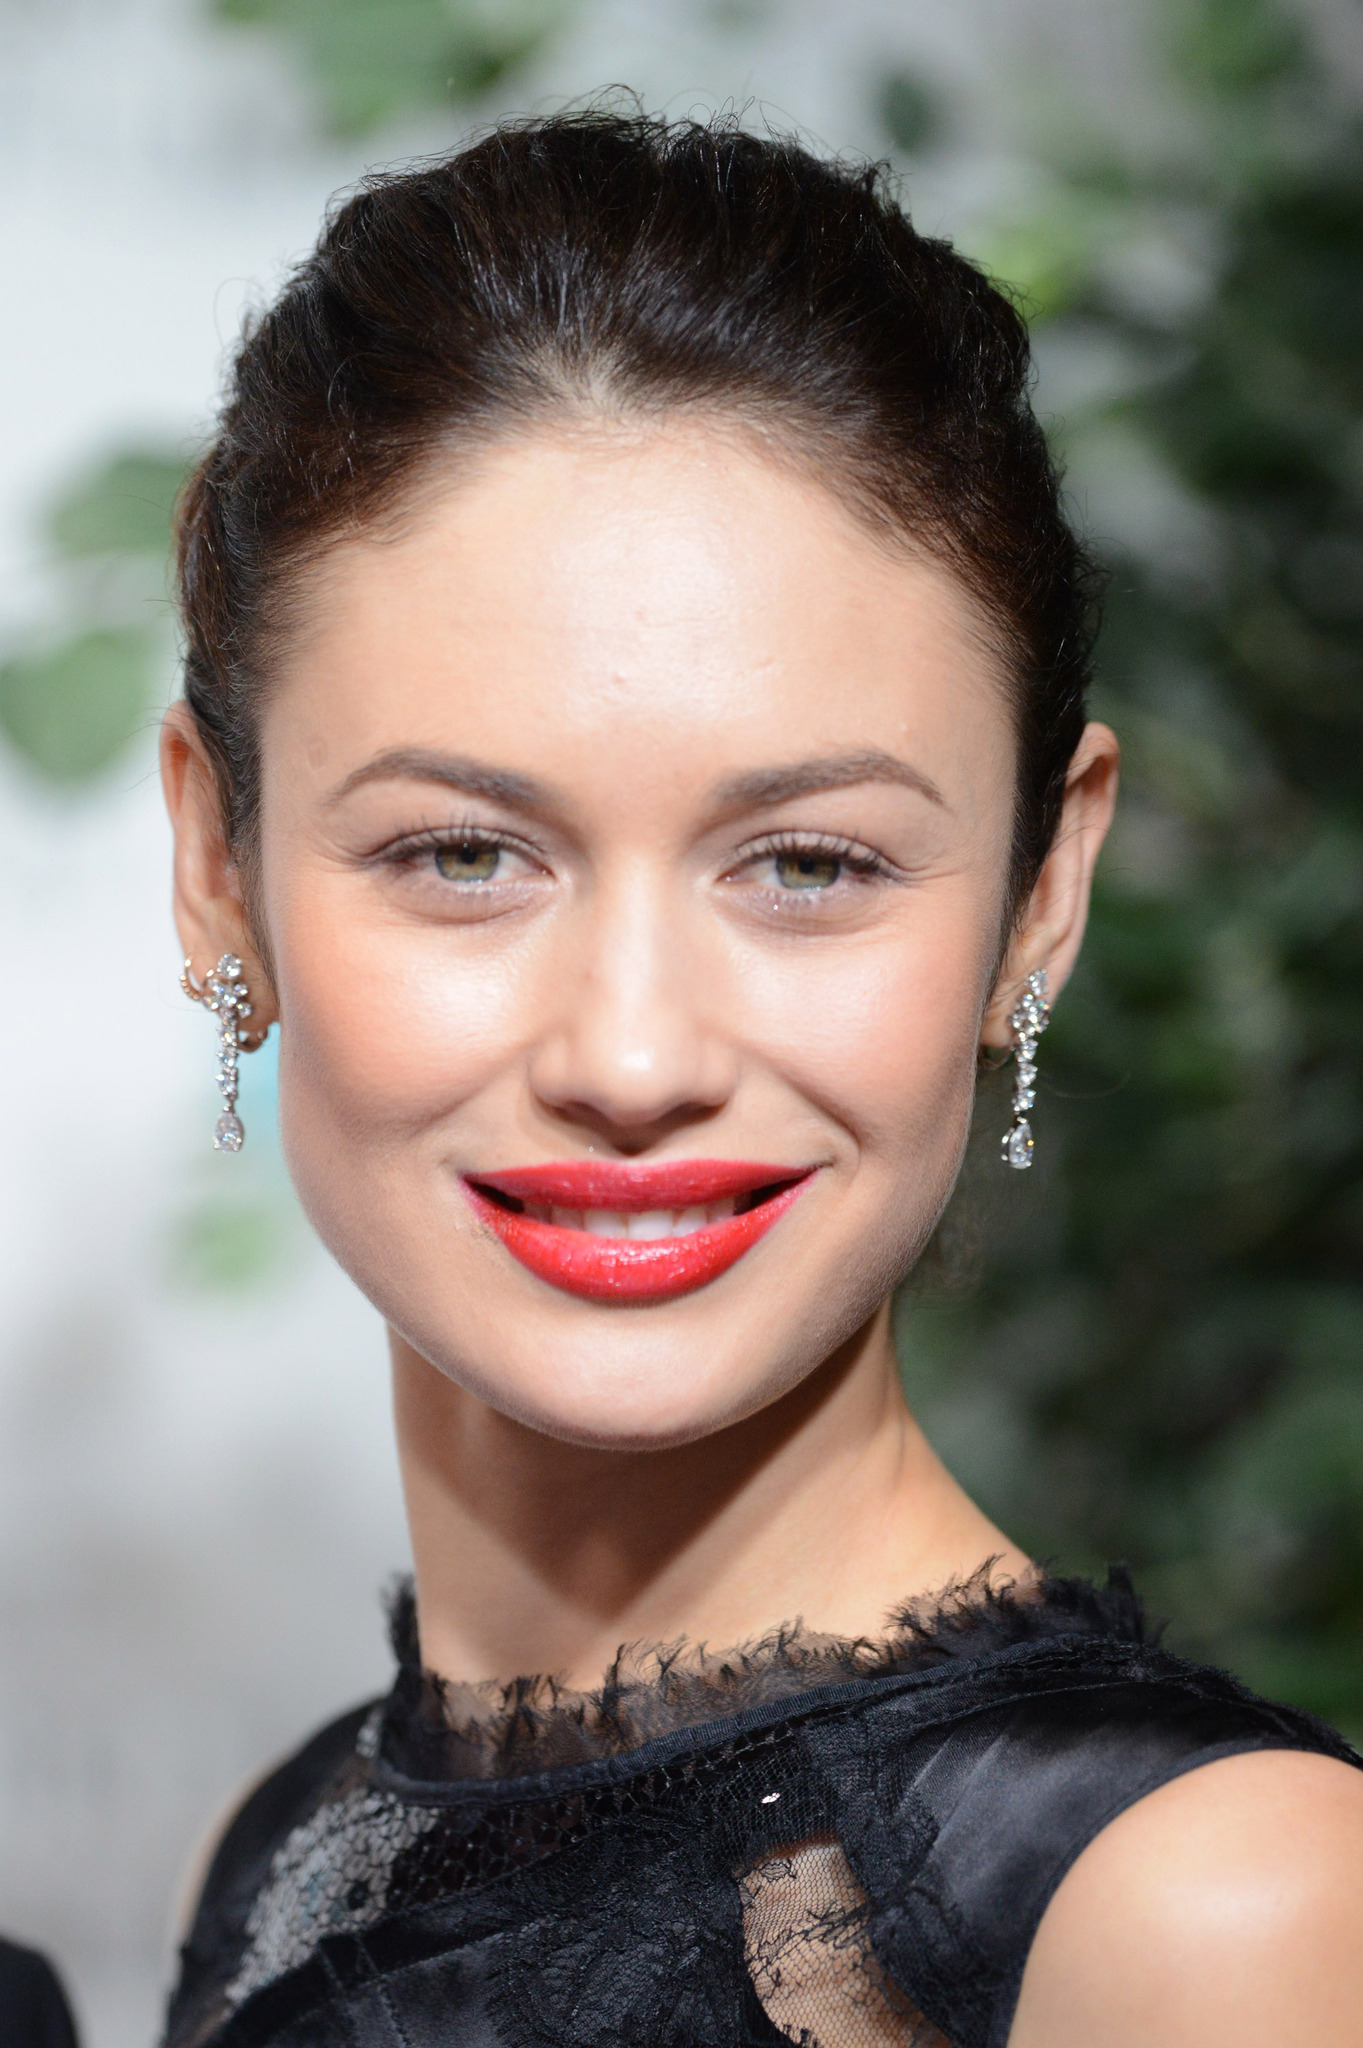 Olga Kurylenko Net Worth And Complete Biography